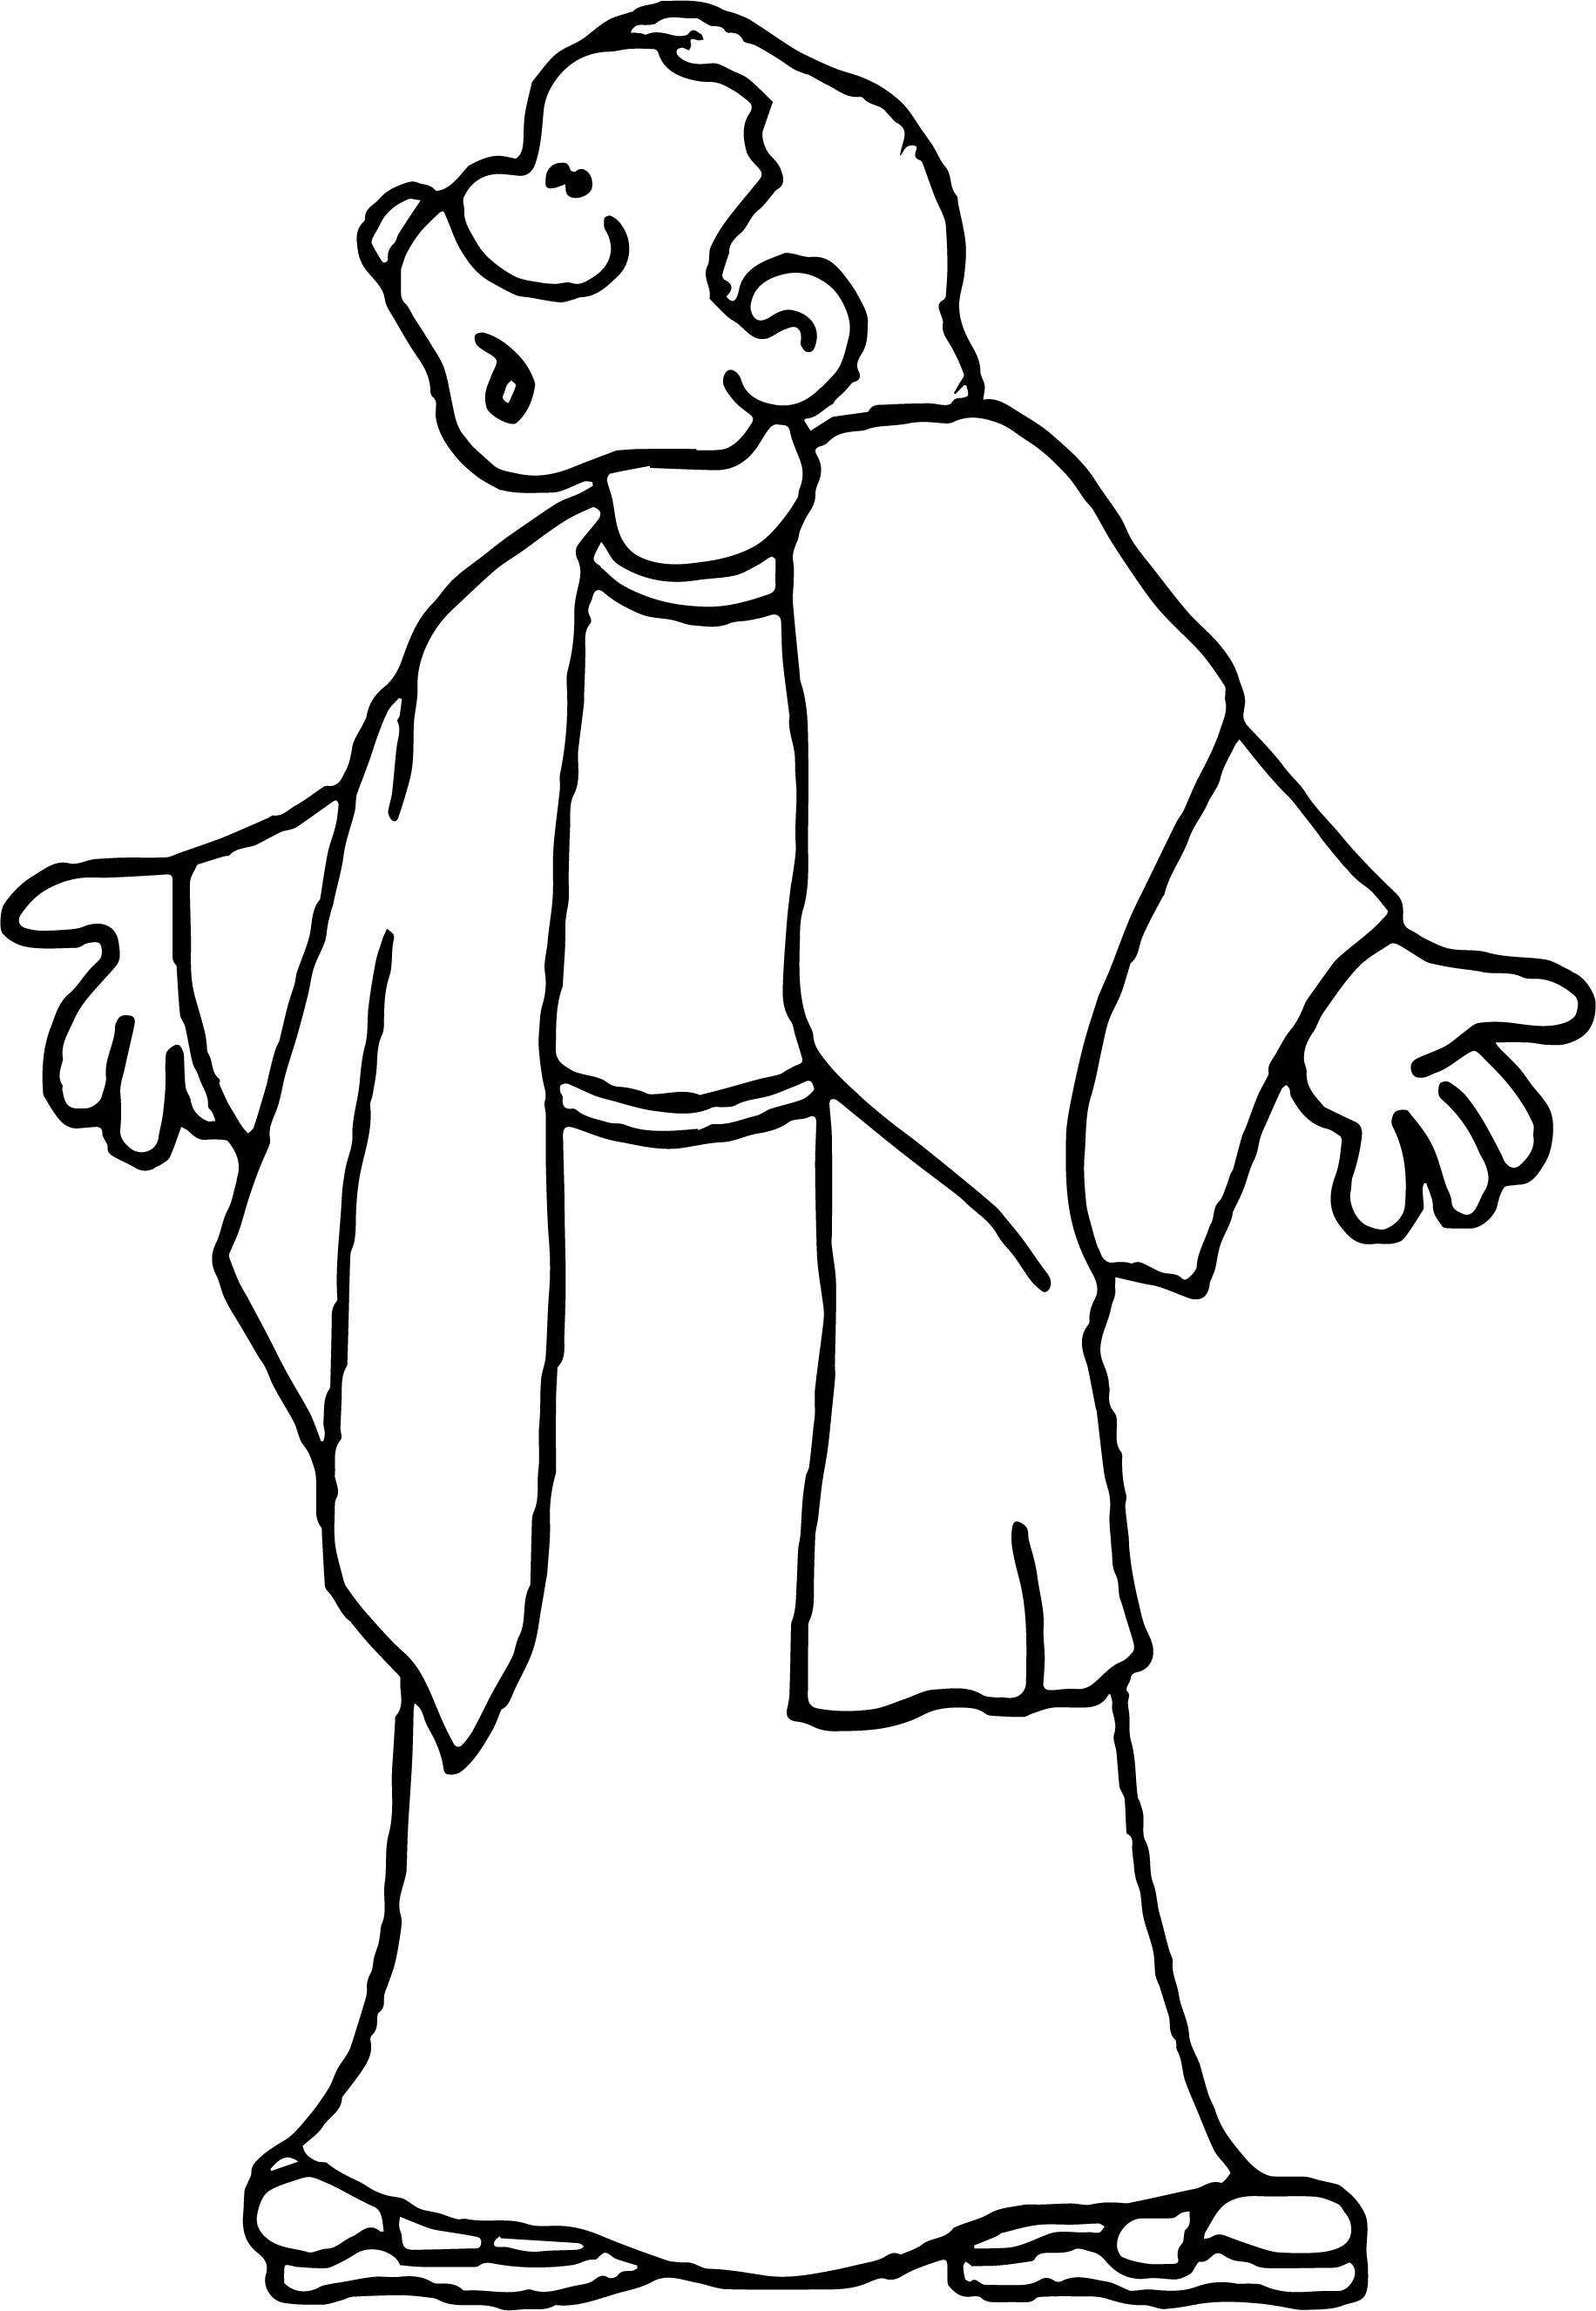 Apostle Paul Coloring Page Coloring Pages